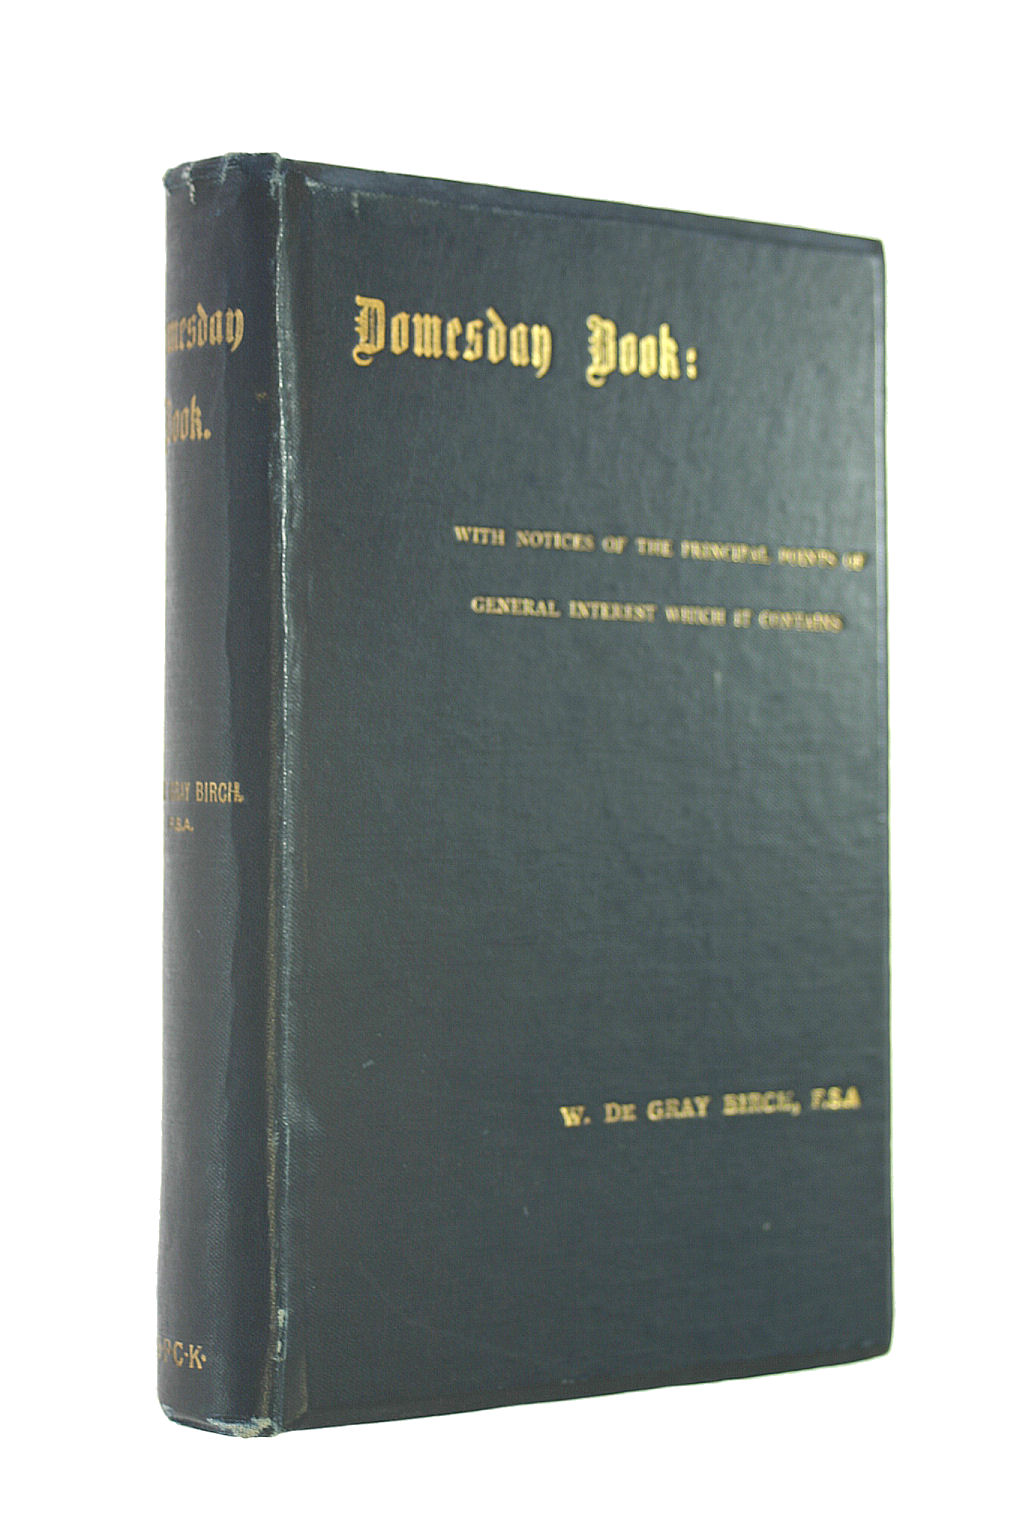 Image for Domesday Book: a Popular Account of the Exchequer Manuscript So Called With Notices of the Principal Points of General Interest Which It Contains